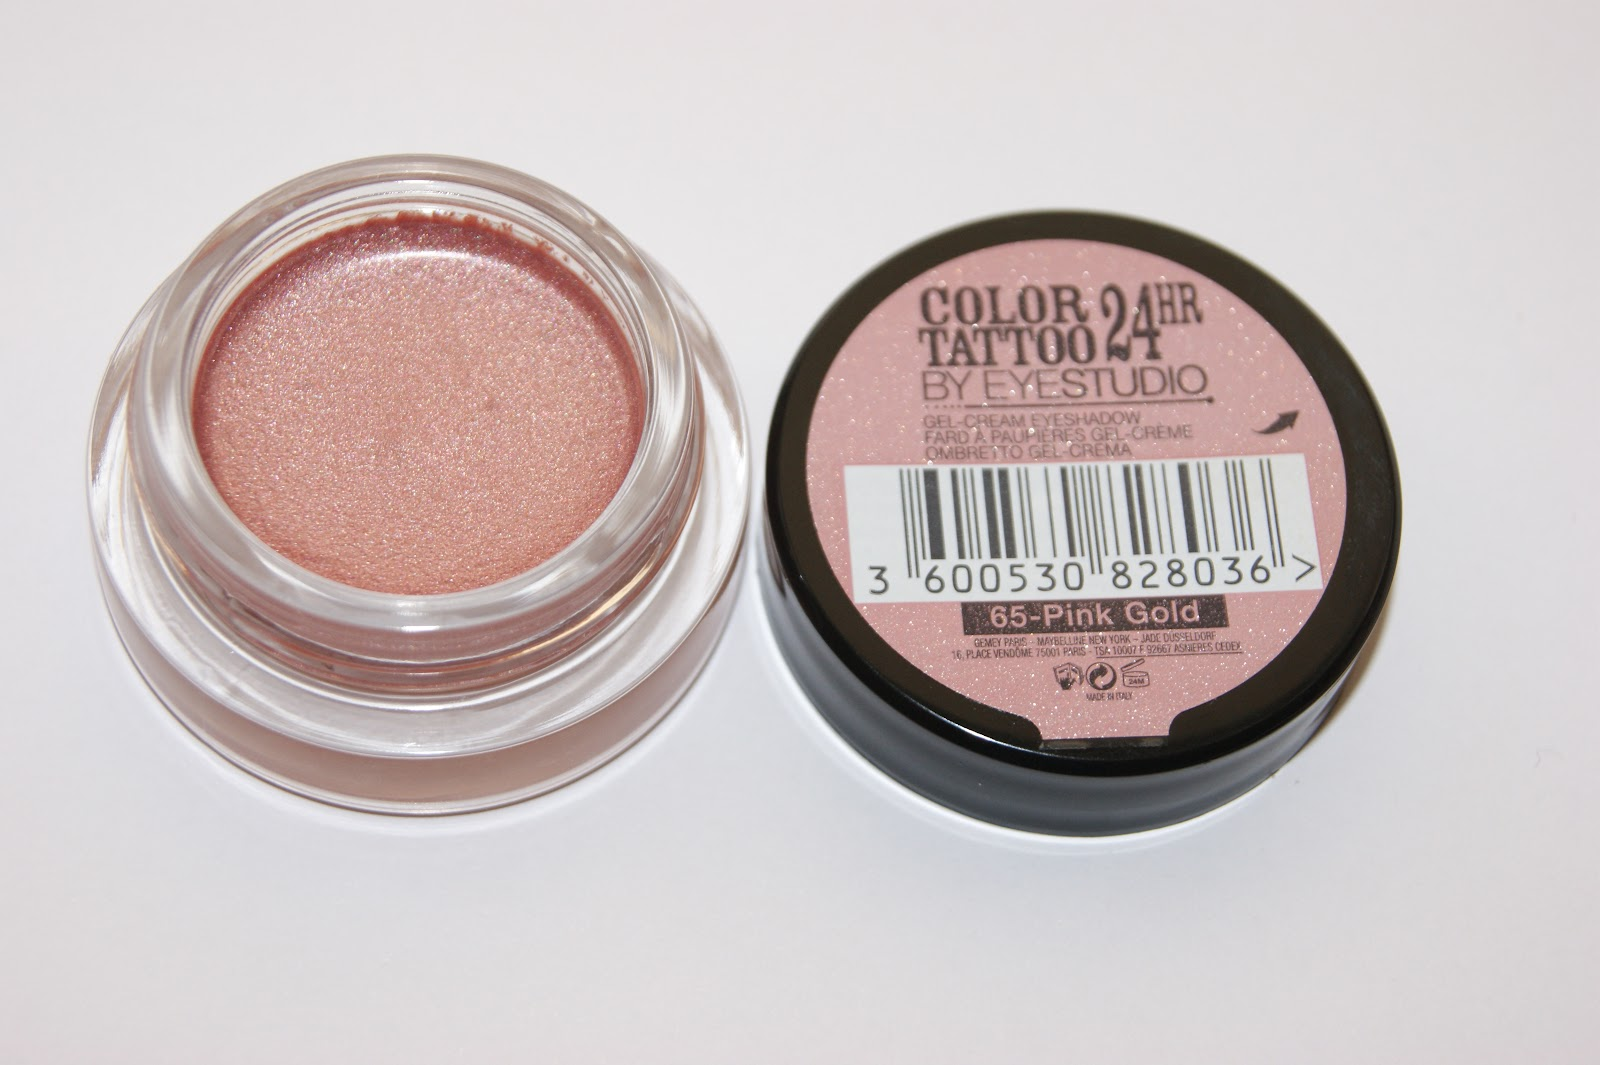 Maybelline Color Tattoo 24hr Eyeshadow in Pink Gold - Review